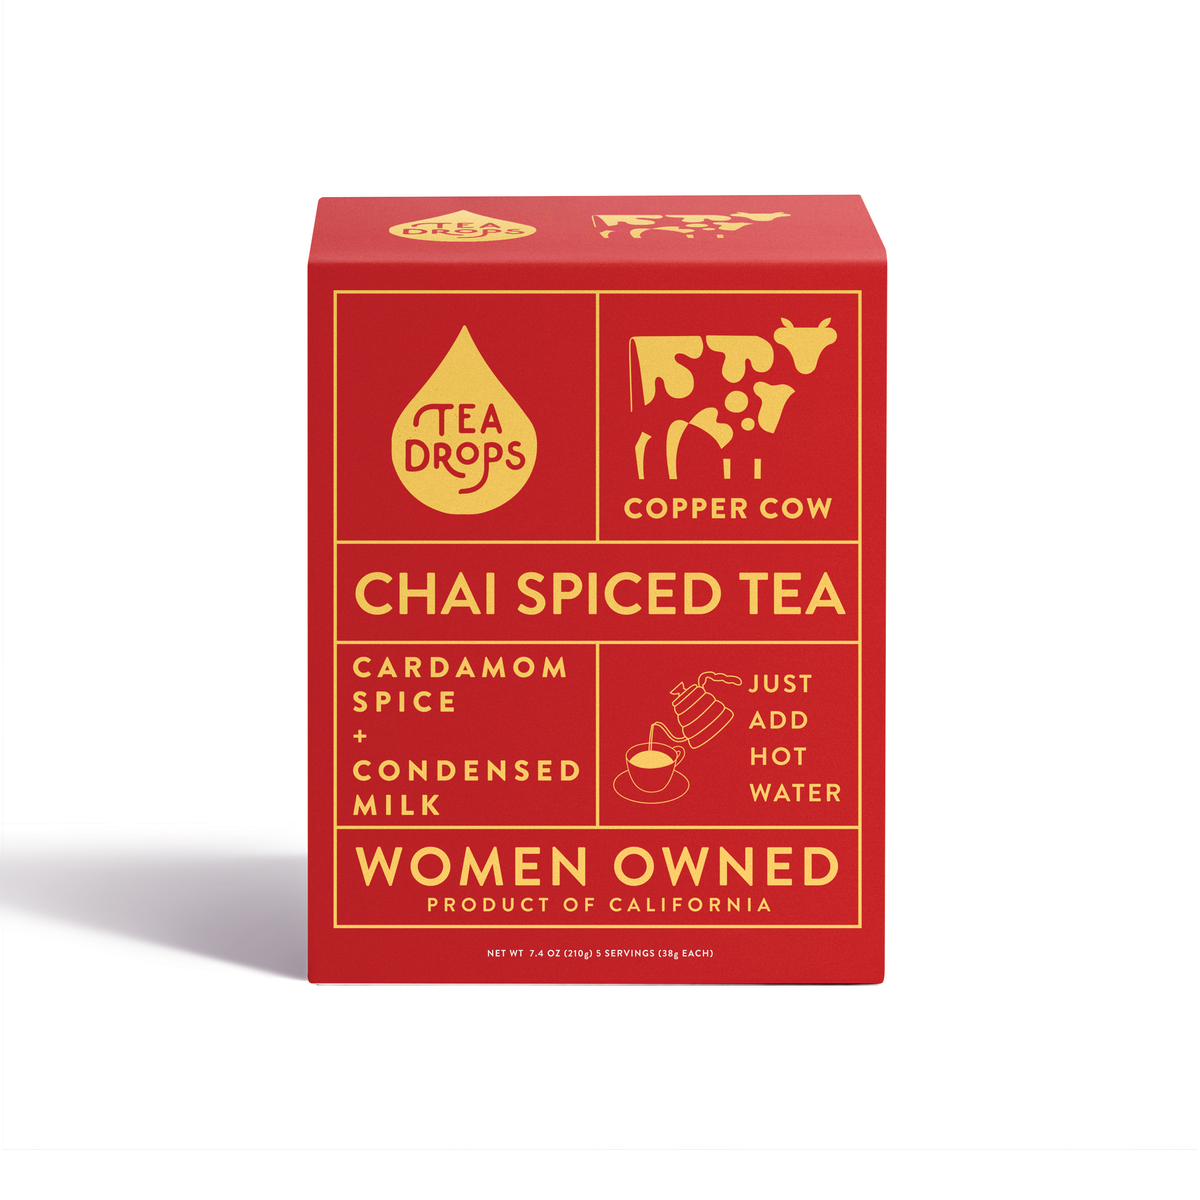 Copper Cow Coffee - Chai Spiced Tea I 5-Pack - Offensive Mug